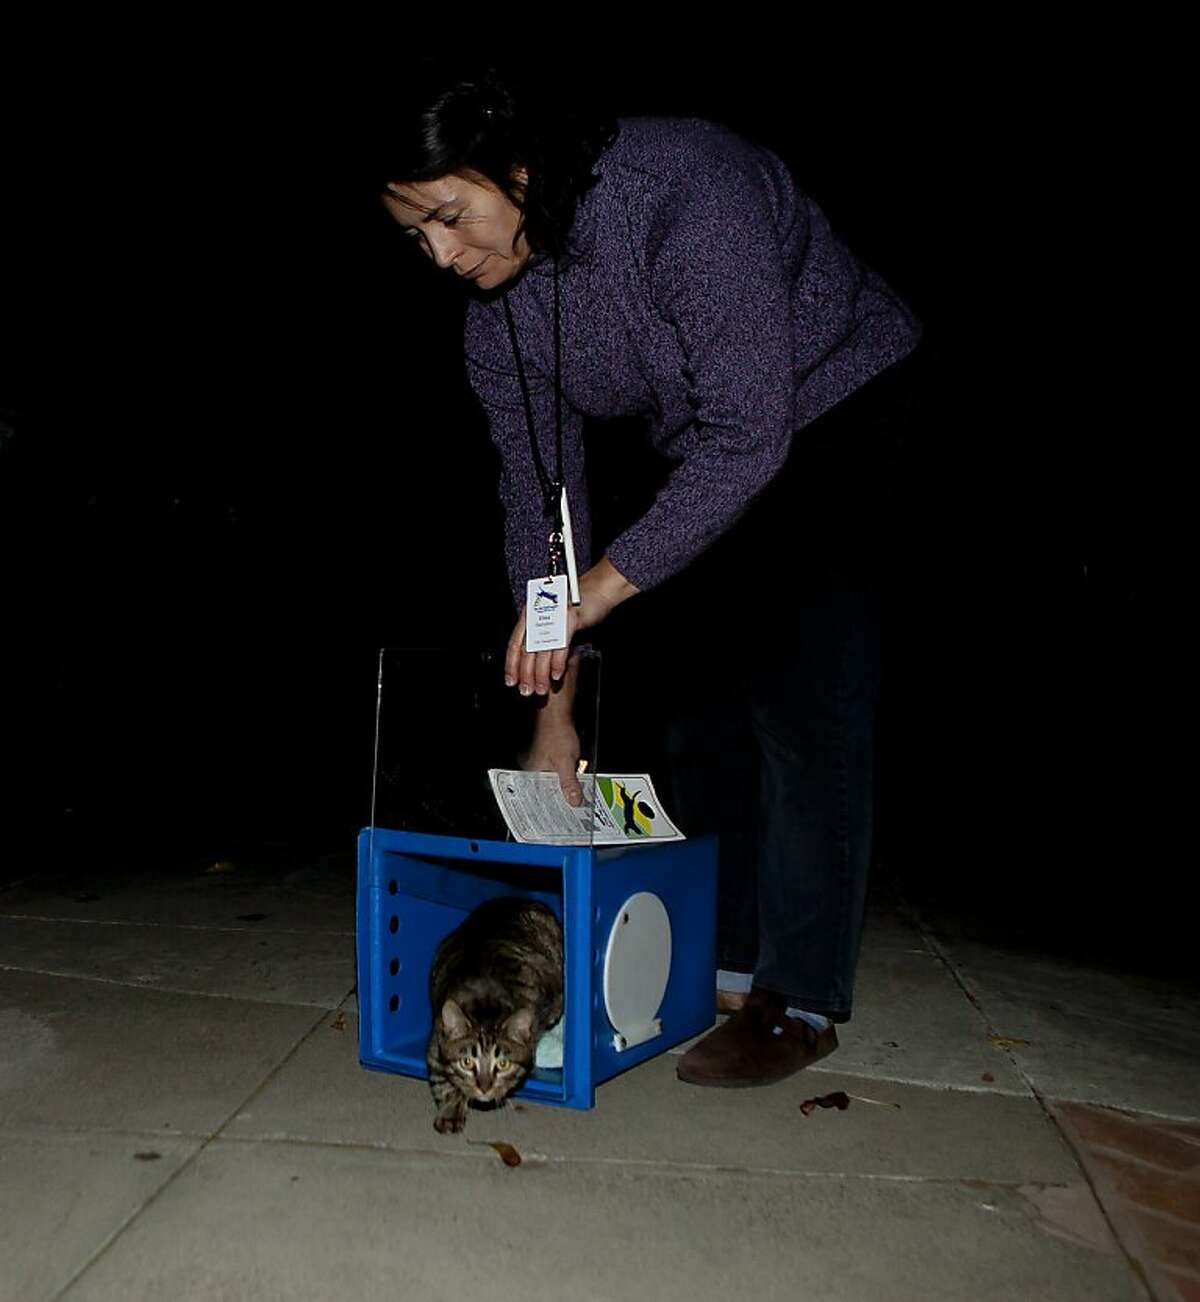 Elisa Hamilton, volunteer of Town Cats, releases a kitten back to her downtown neighborhood after she was spayed at the San Jose Animal Shelter on Wednesday, December 21, 2011 in San Jose, Calif. Feral cats are being captured, neutered or spayed, micro-chipped then released back to the streets under a new program called Feral Freedom, adopted by the City of San Jose.